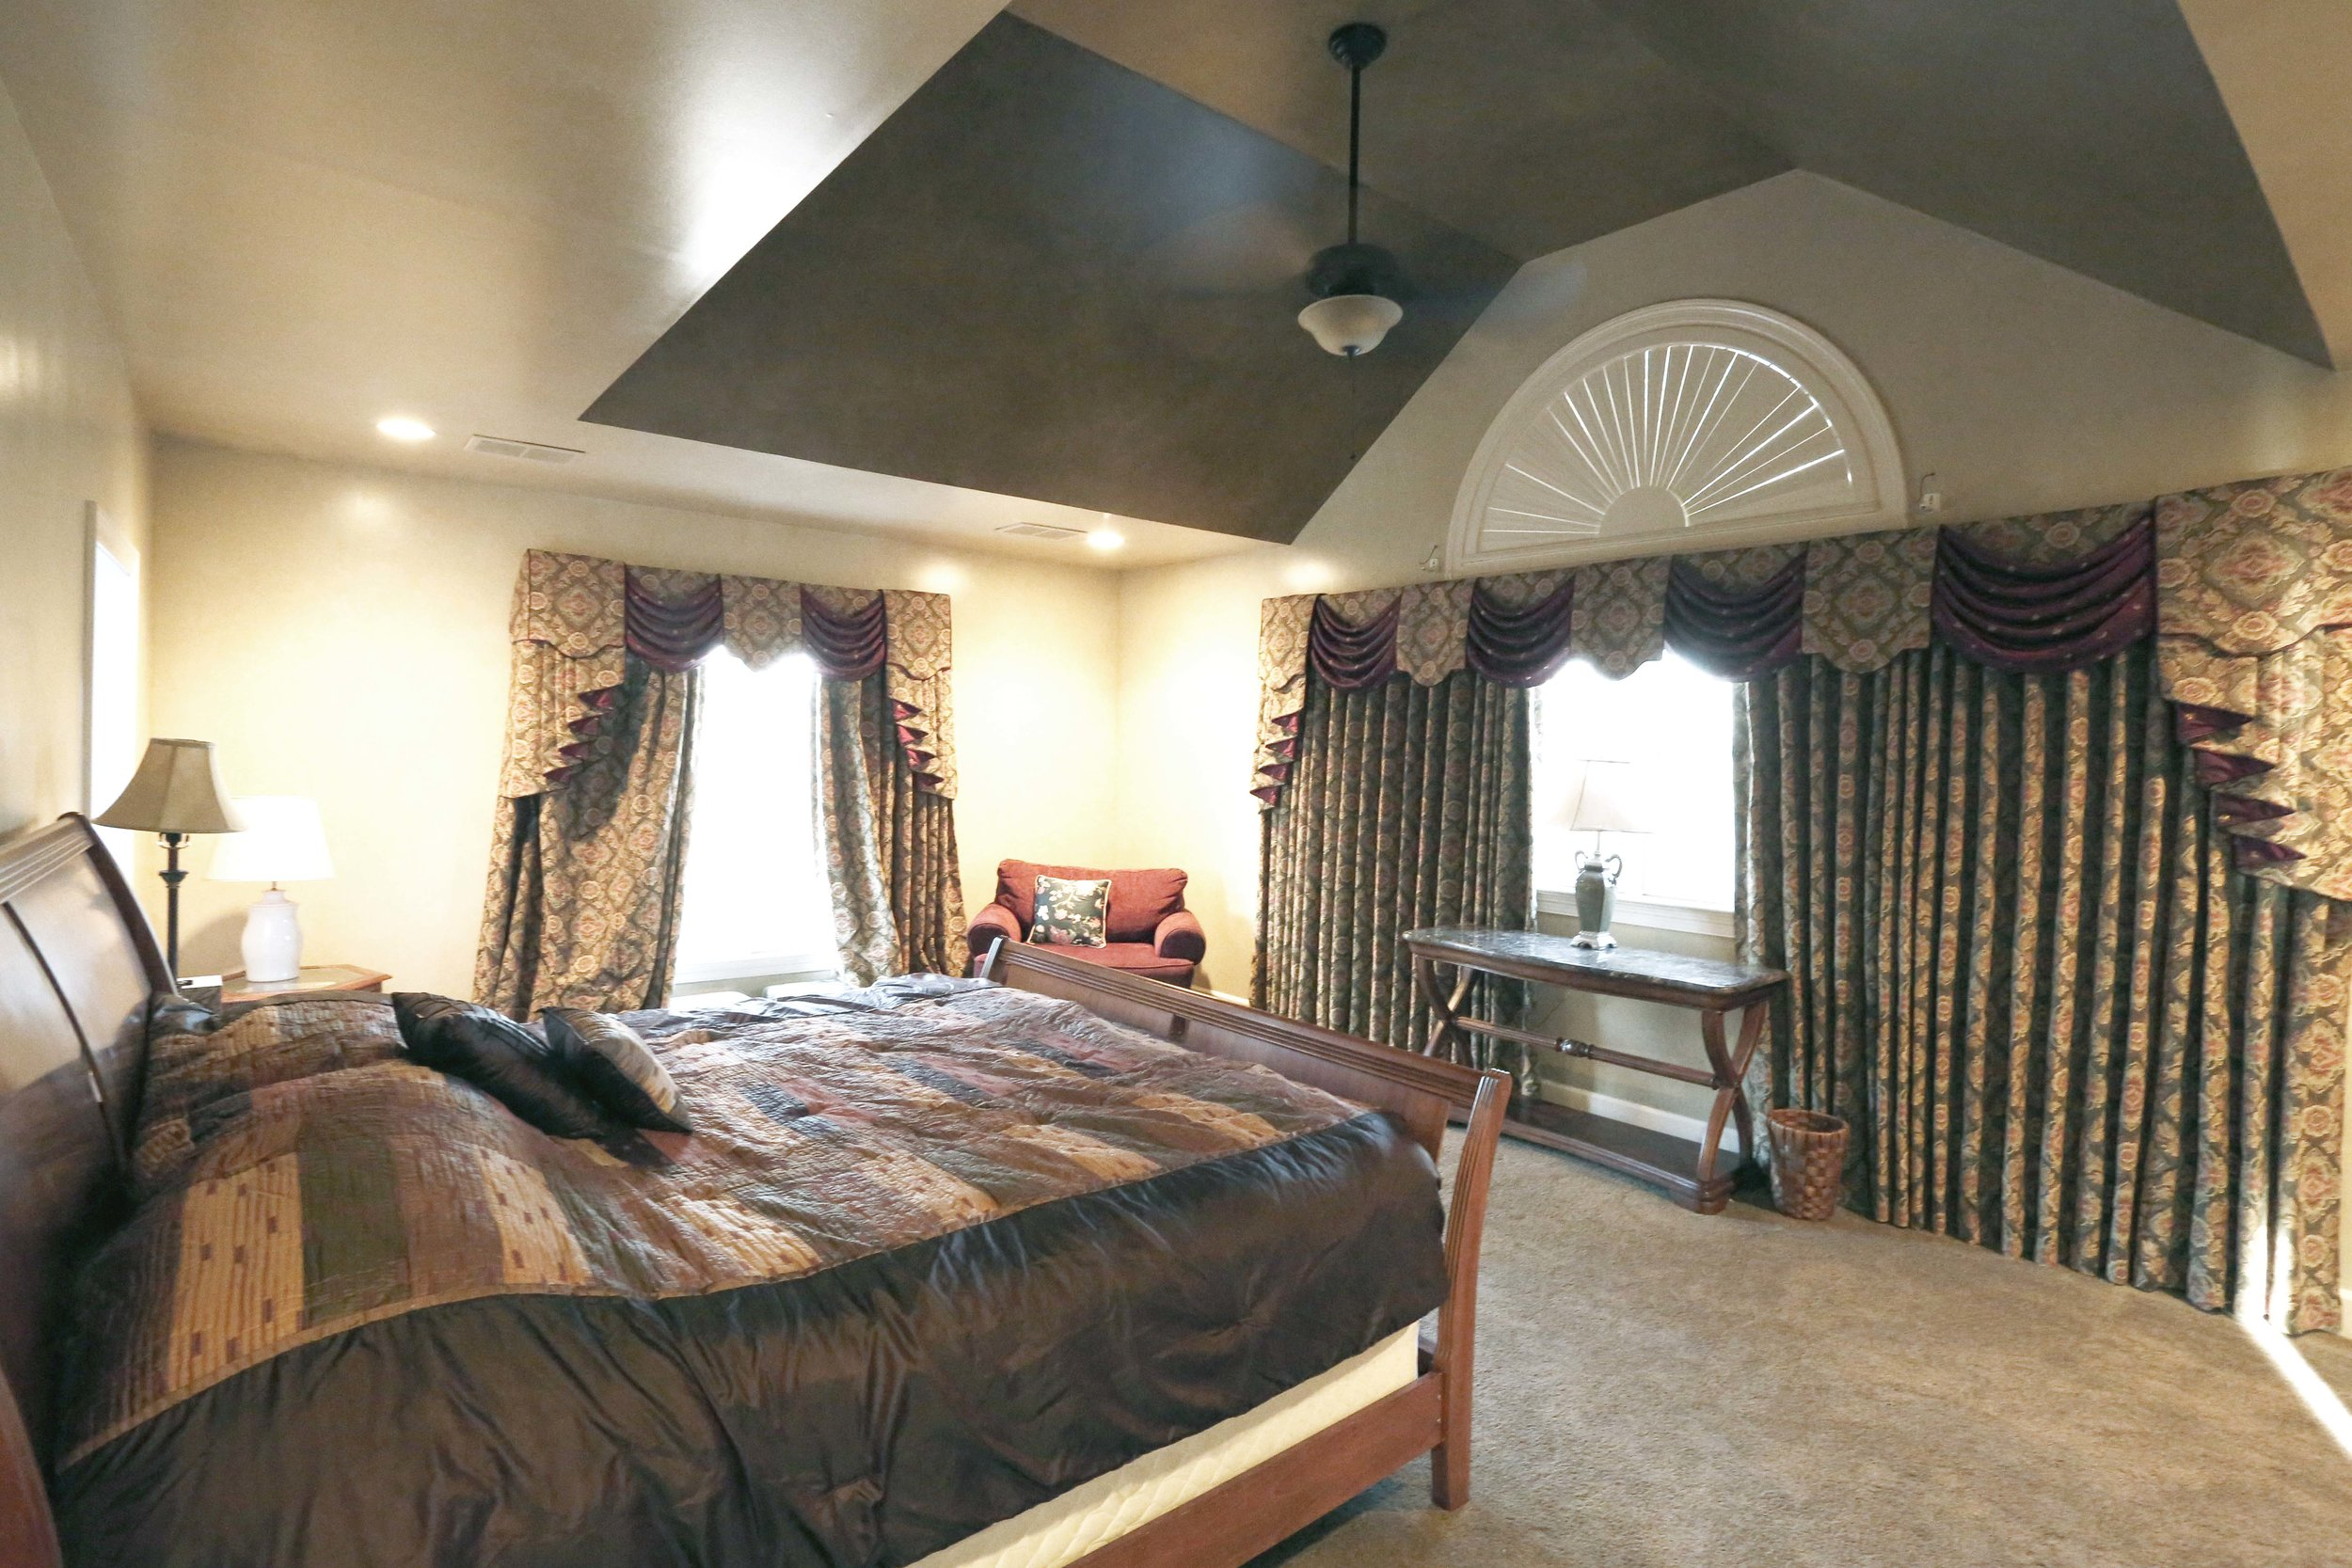 The Mansion Master Bedroom has a California King and a humongous bathroom.